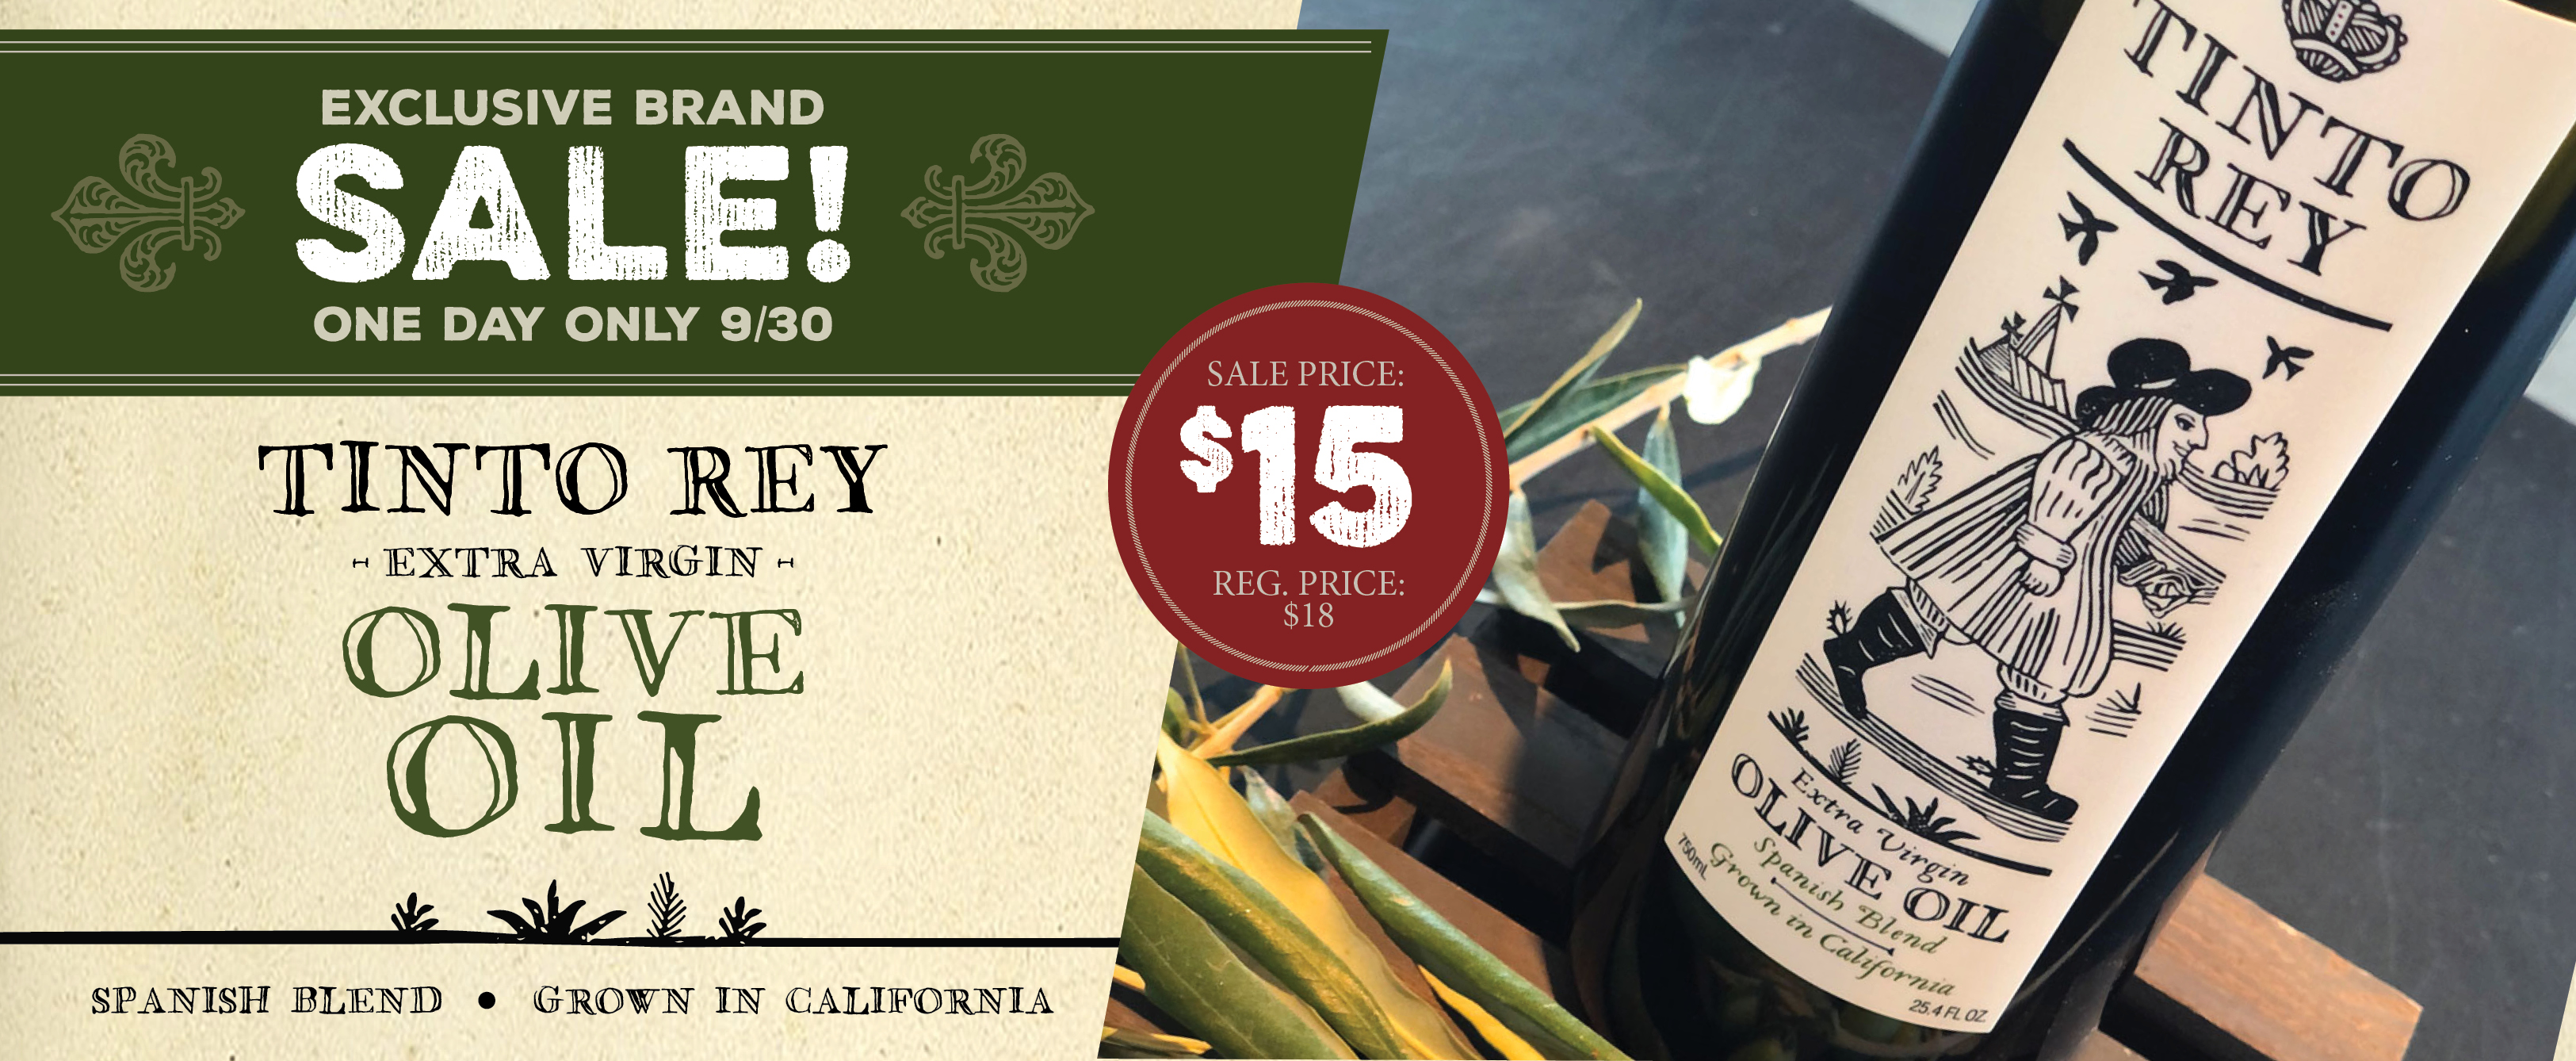 Tinto Rey Olive Oil Sale